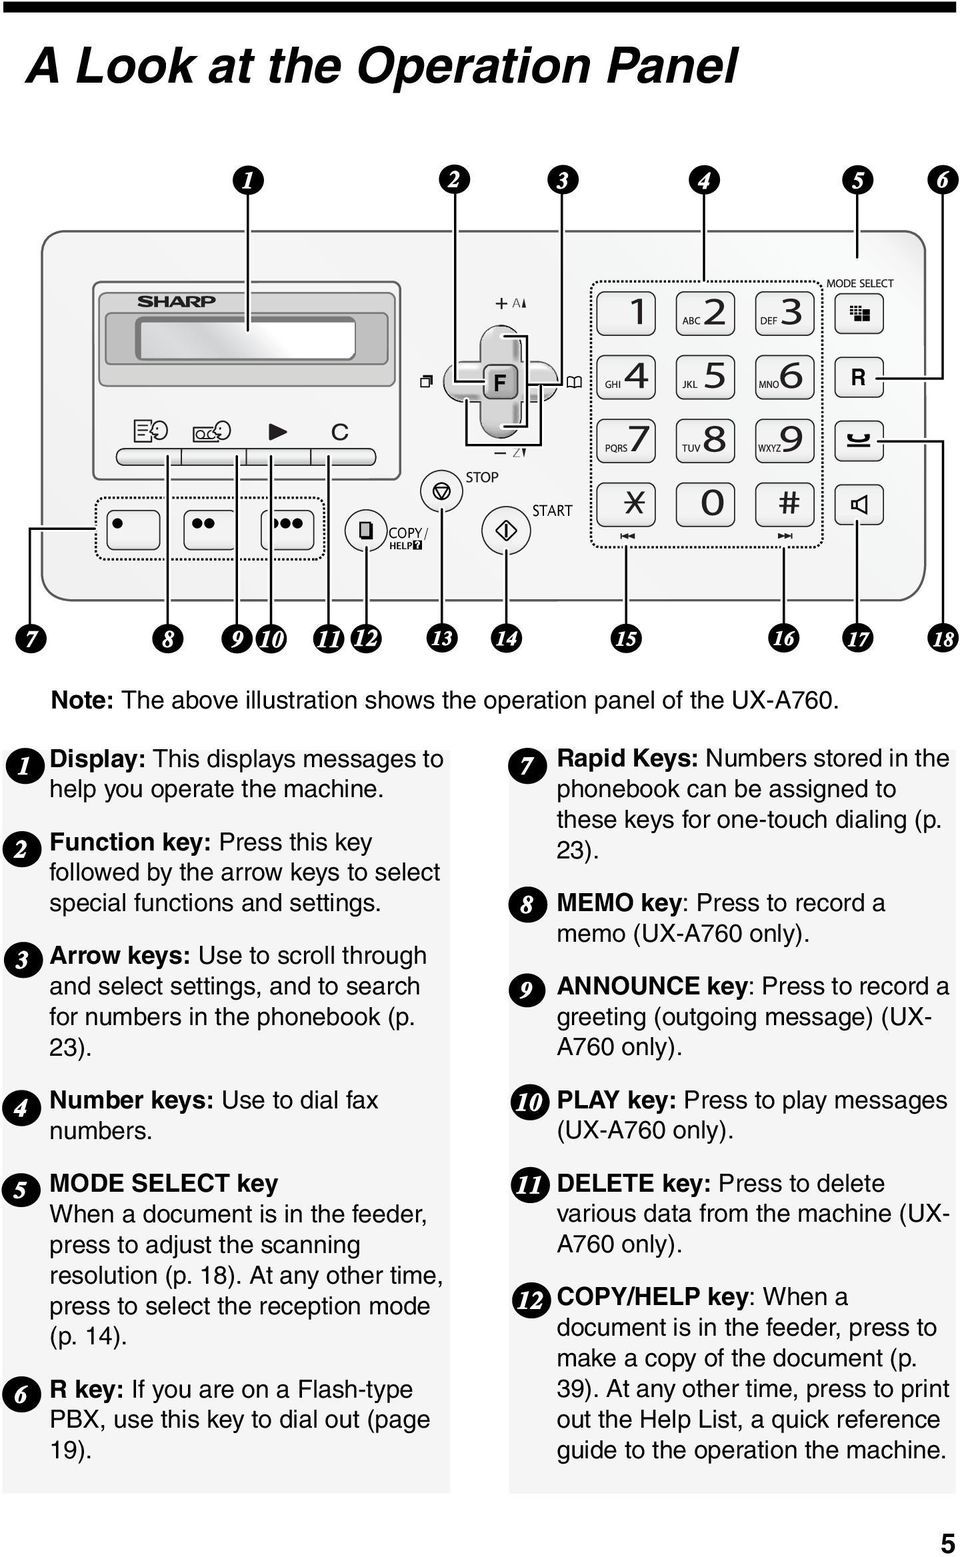 Arrow keys: Use to scroll through and select settings, and to search for numbers in the phonebook (p. 23).